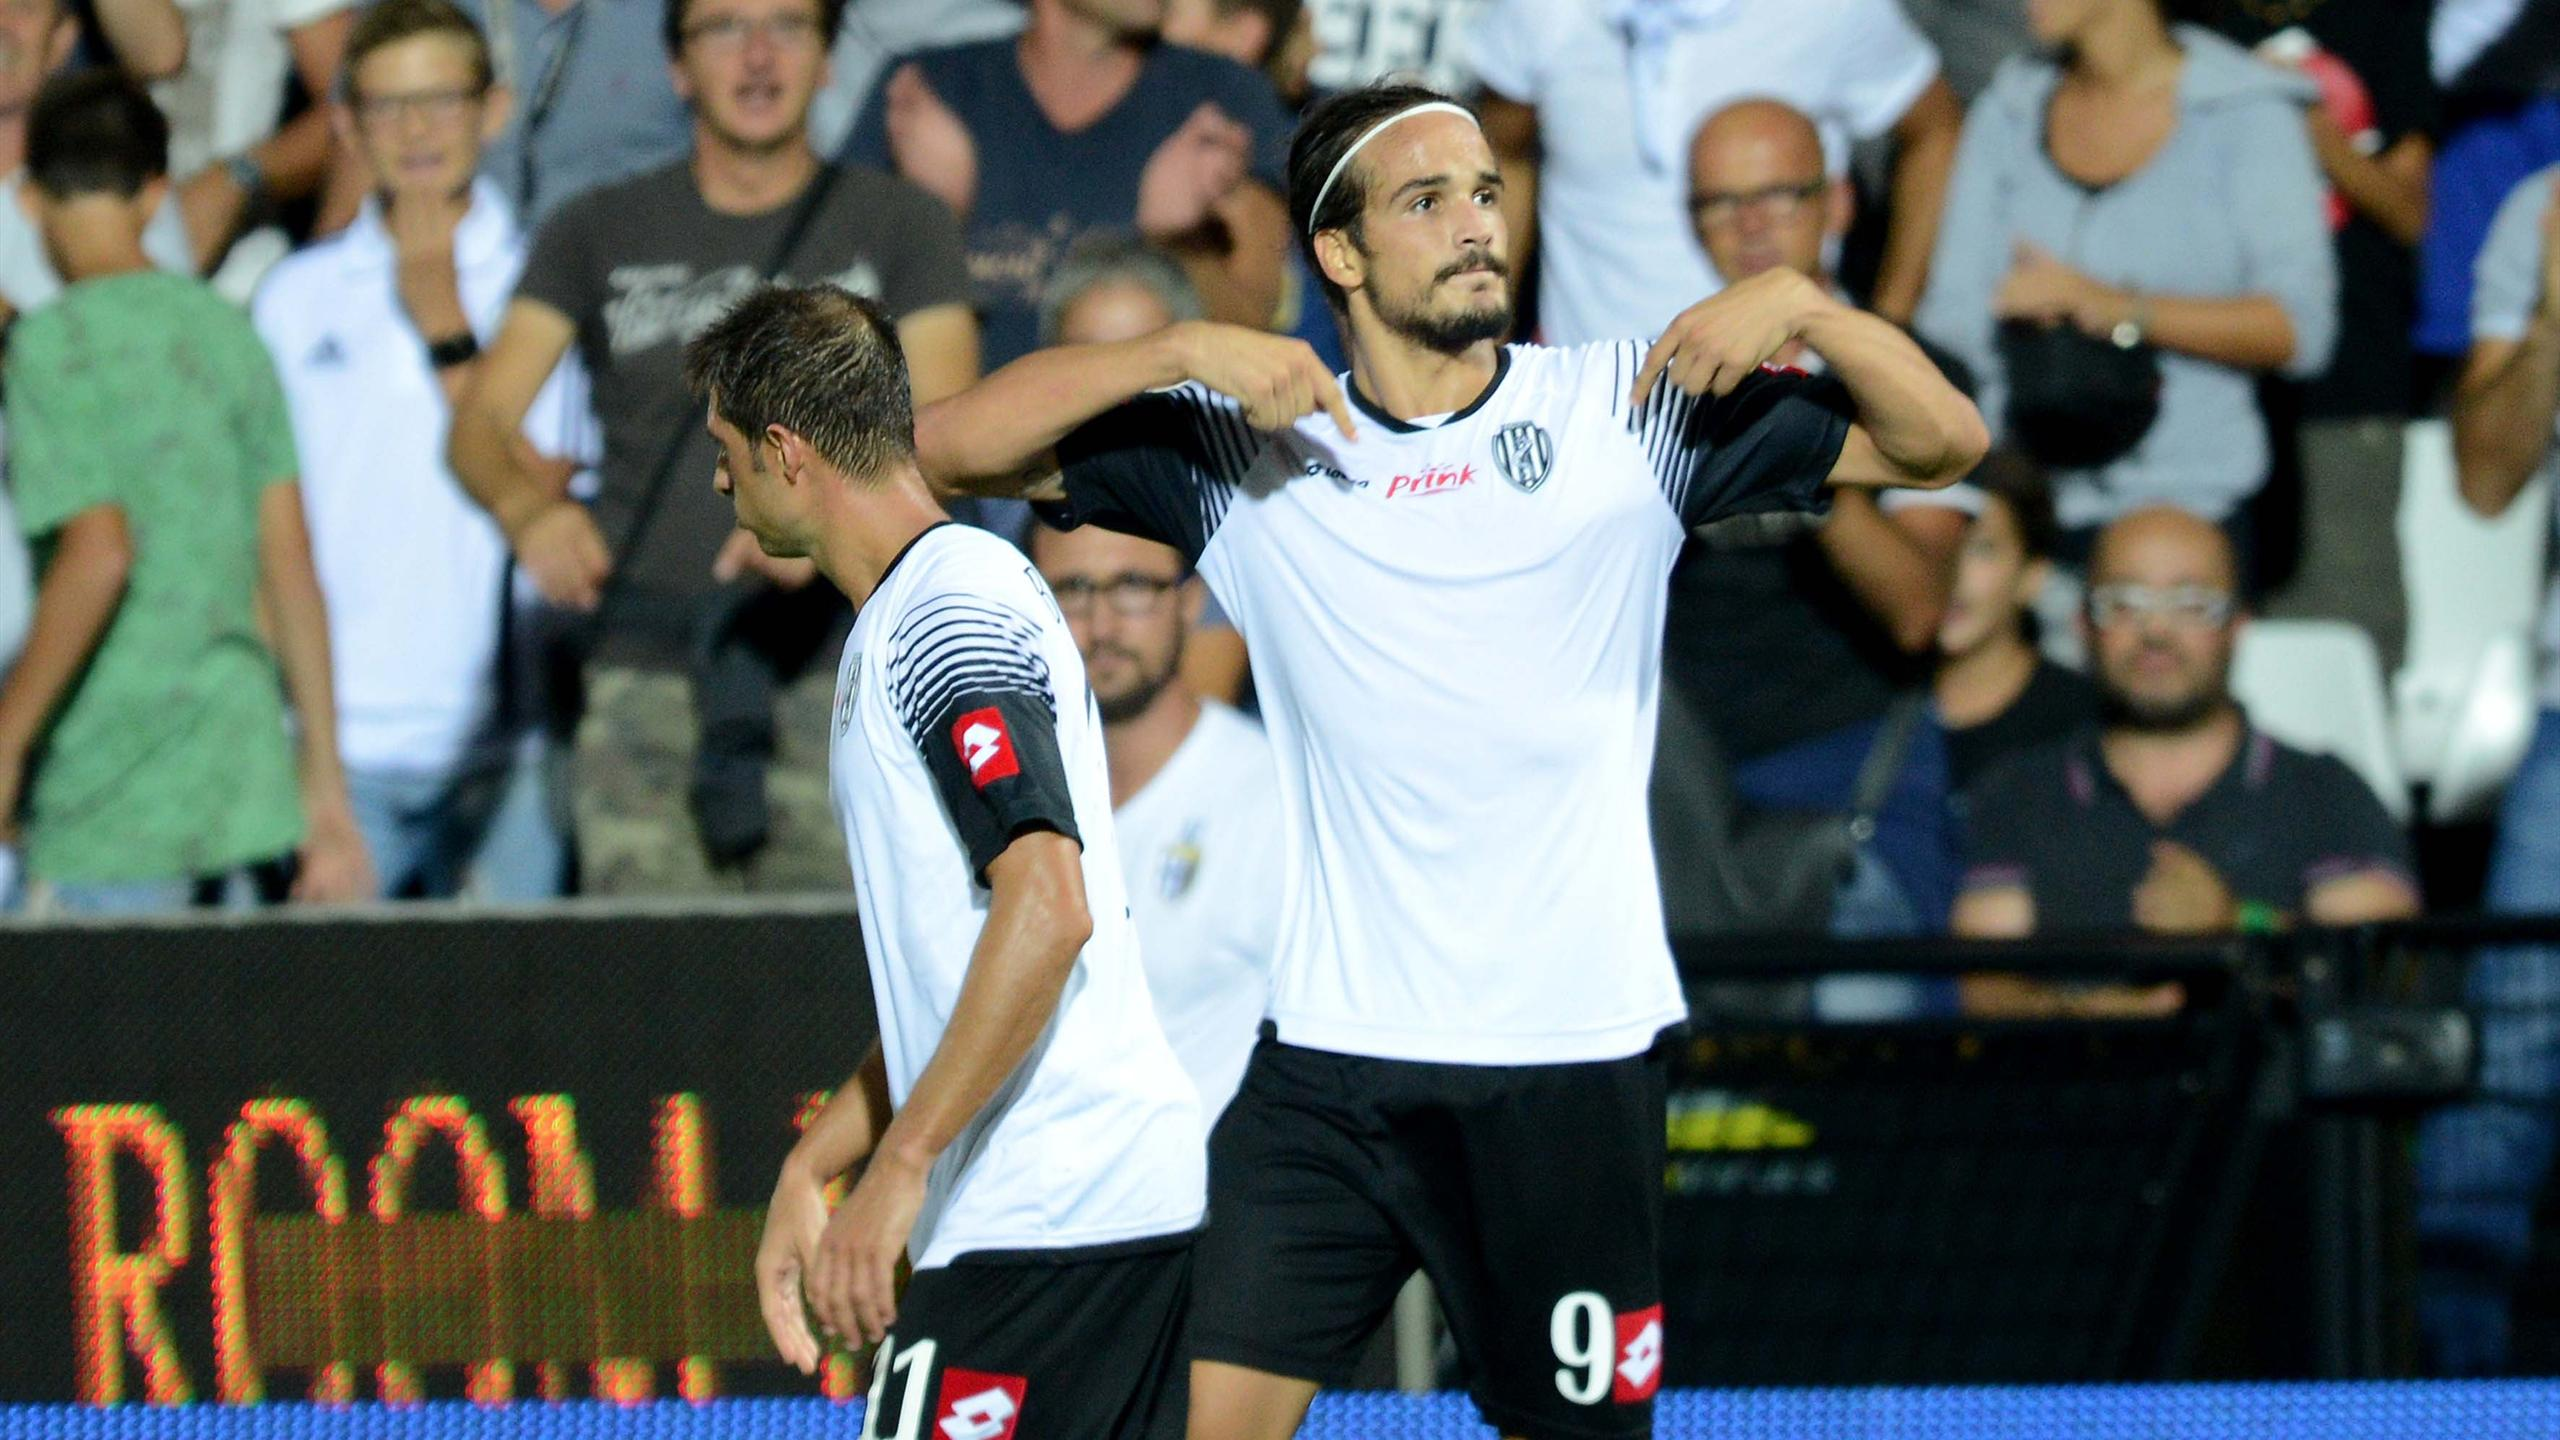 Video: Cesena vs Parma